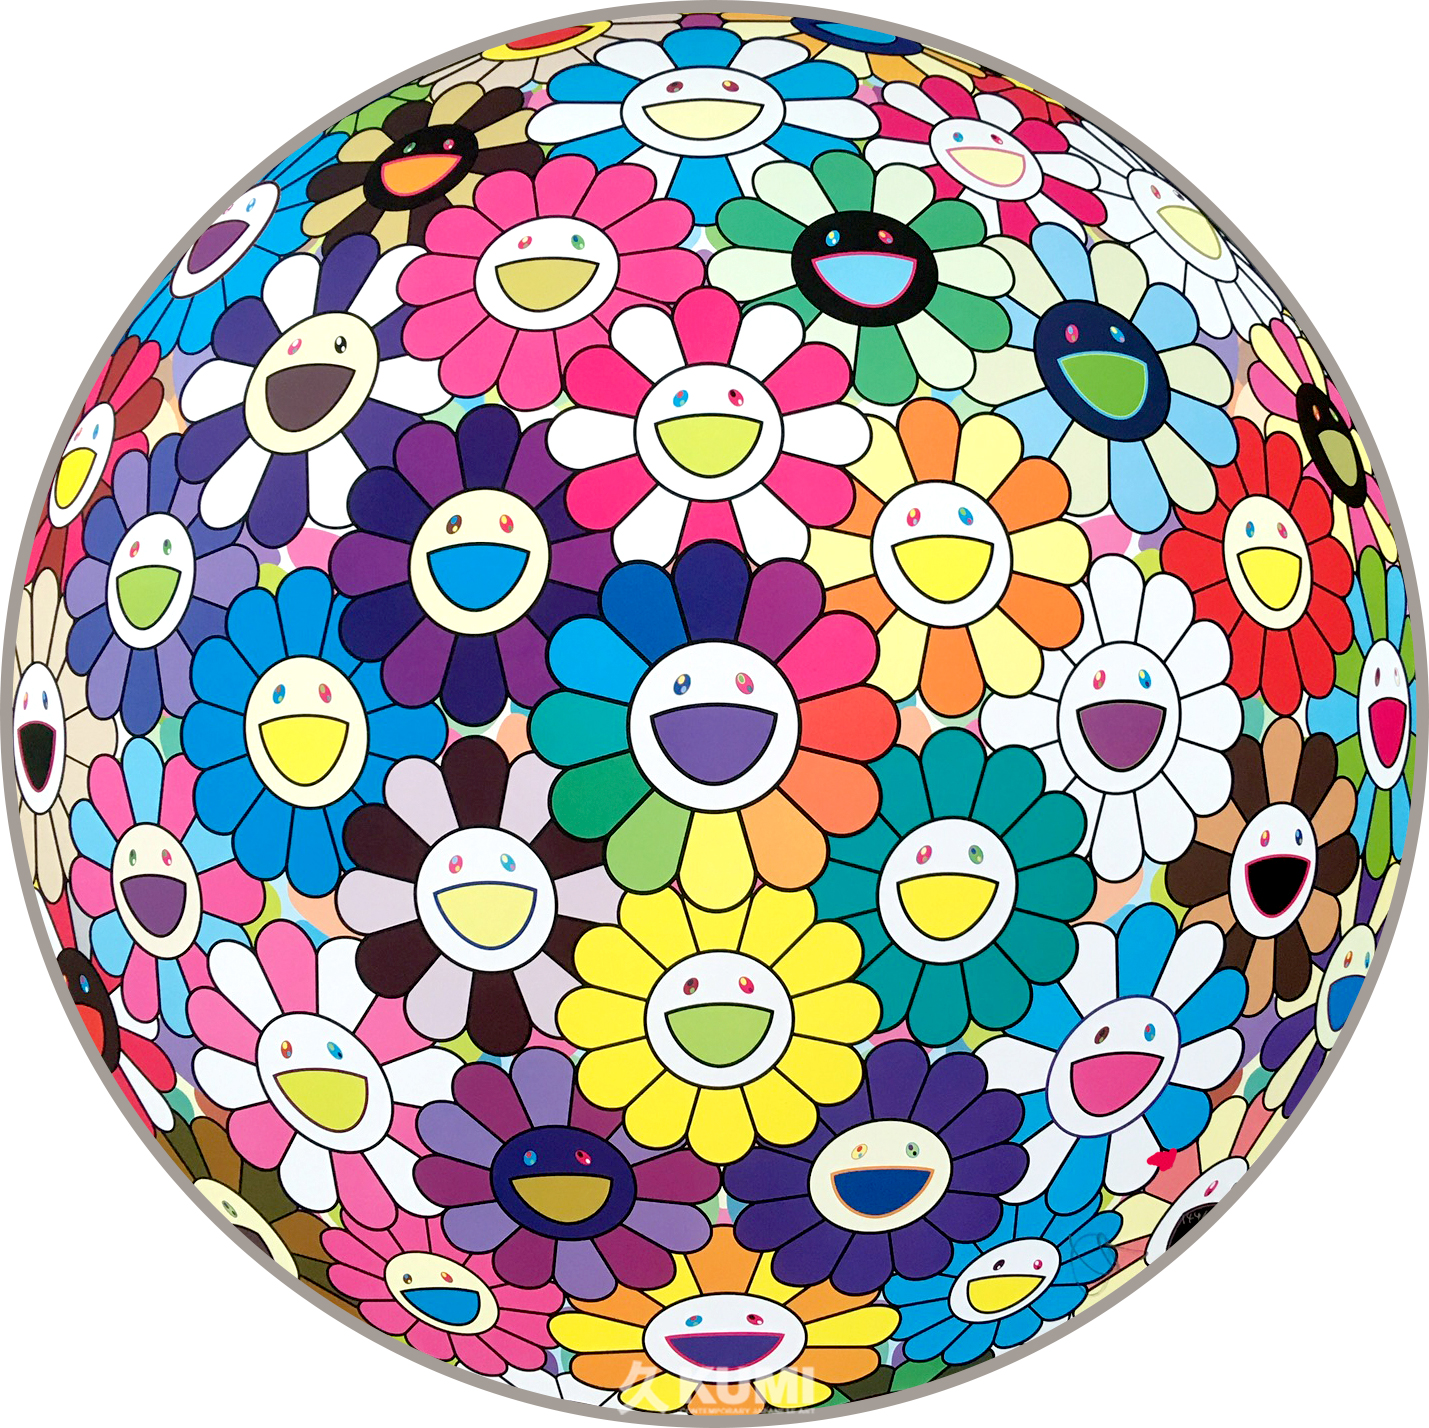 Takashi Murakami: Flower Ball (Multicolor Thoughts on Matisse)